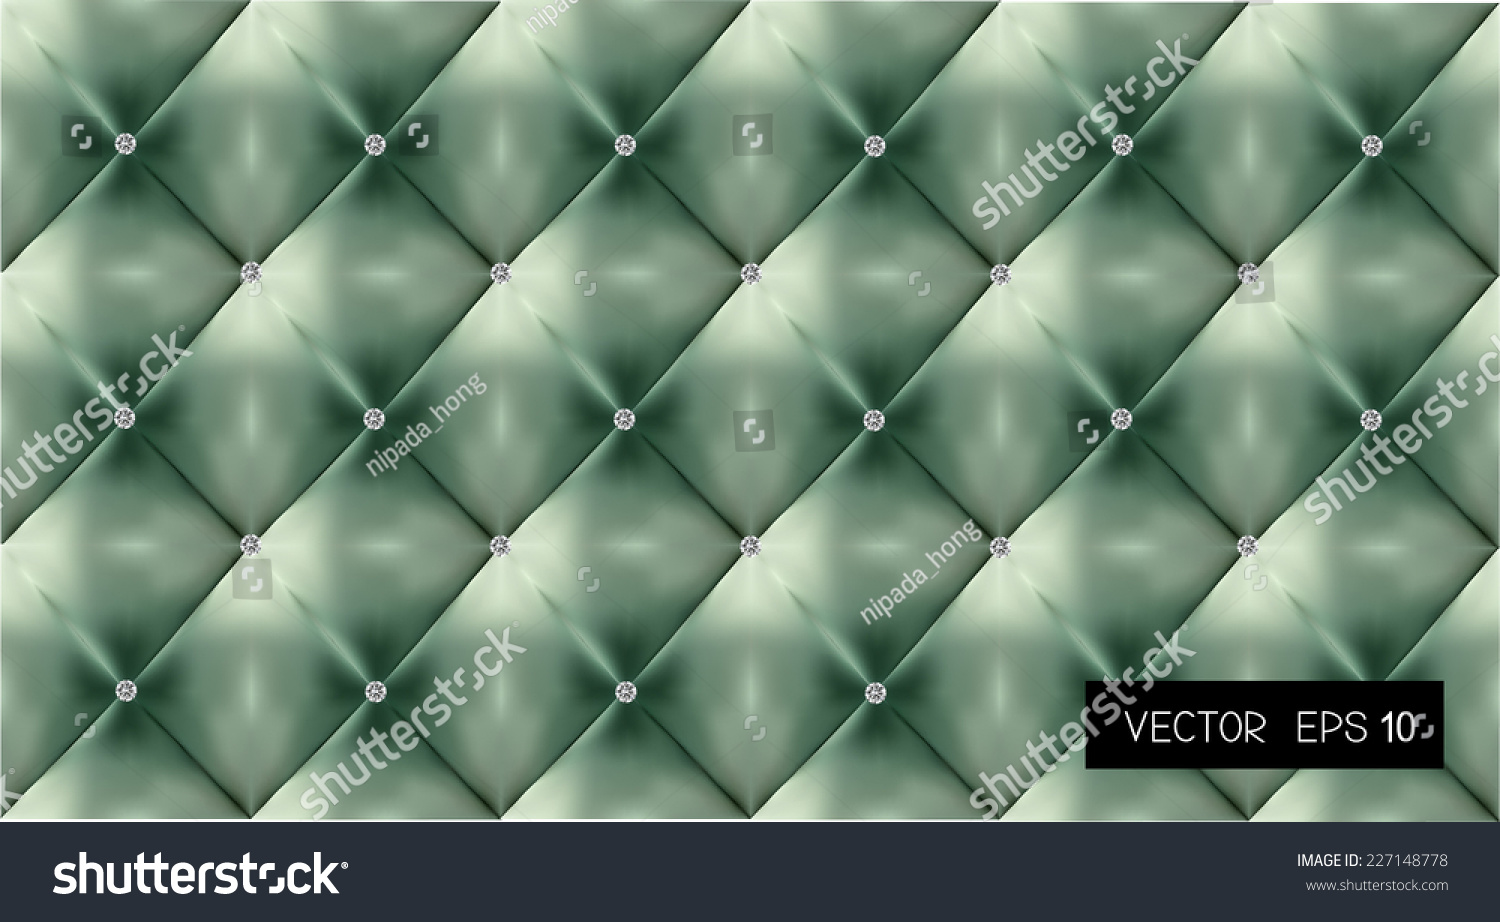 Sofa Texture Vector Sofa Texture Background Vector Illustration Stock Vector Royalty